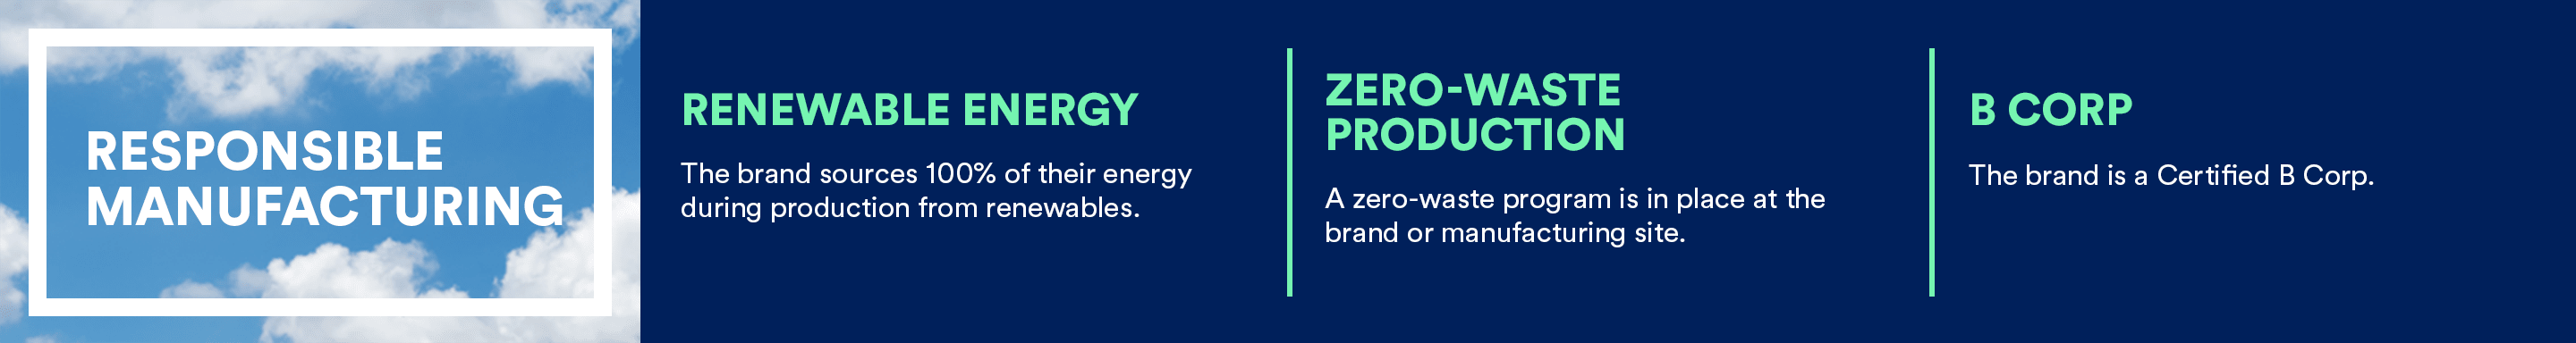 RESPONSIBLE MANUFACTURING; Renewable Energy, Zero-Waste Production, B Corp Certified